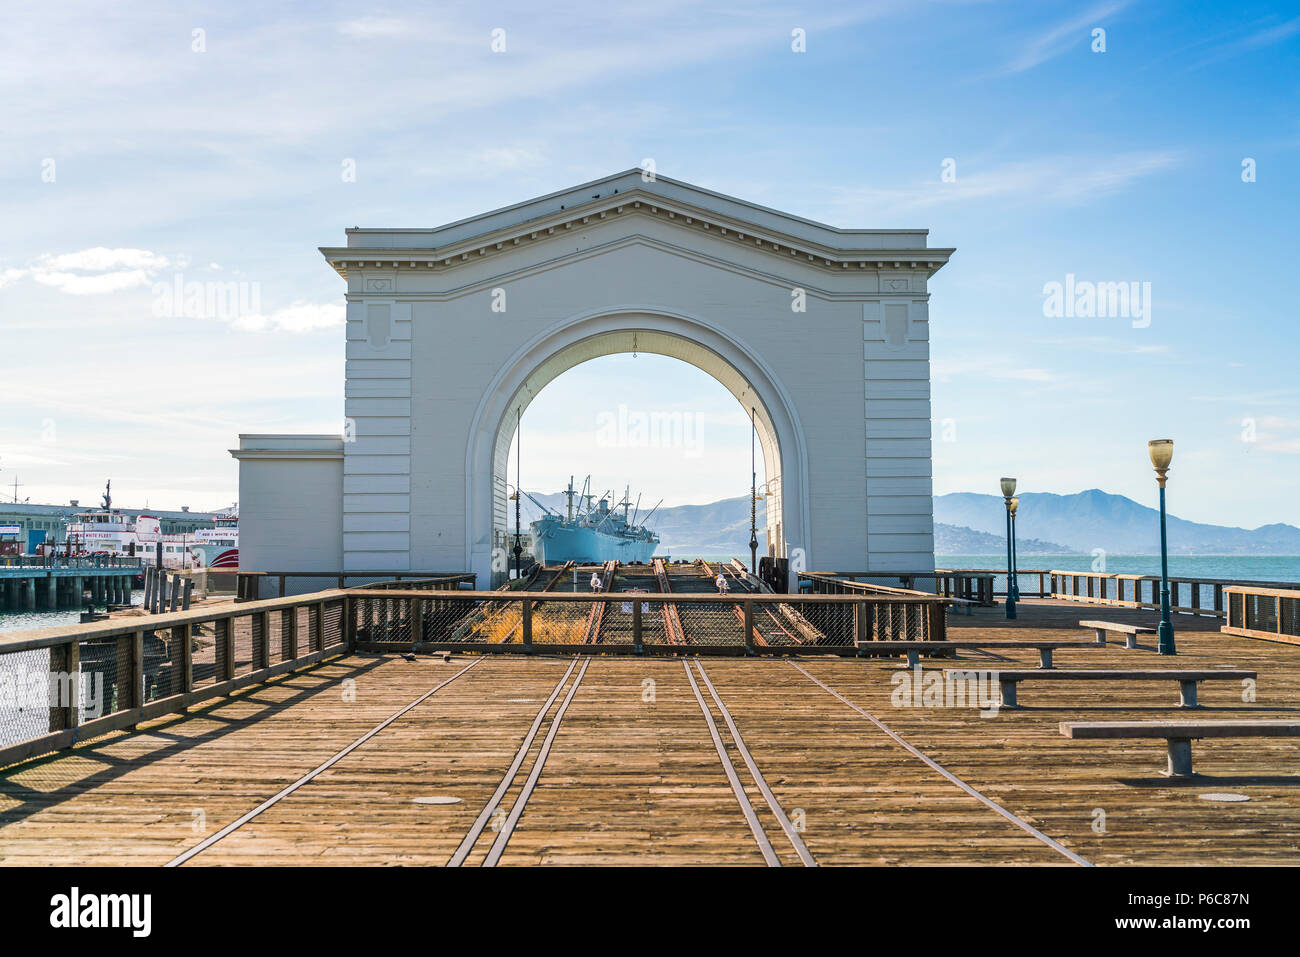 san francisco,california,usa,2016/04/20:  Arch ferry in pier 43 on sunny day. - Stock Image